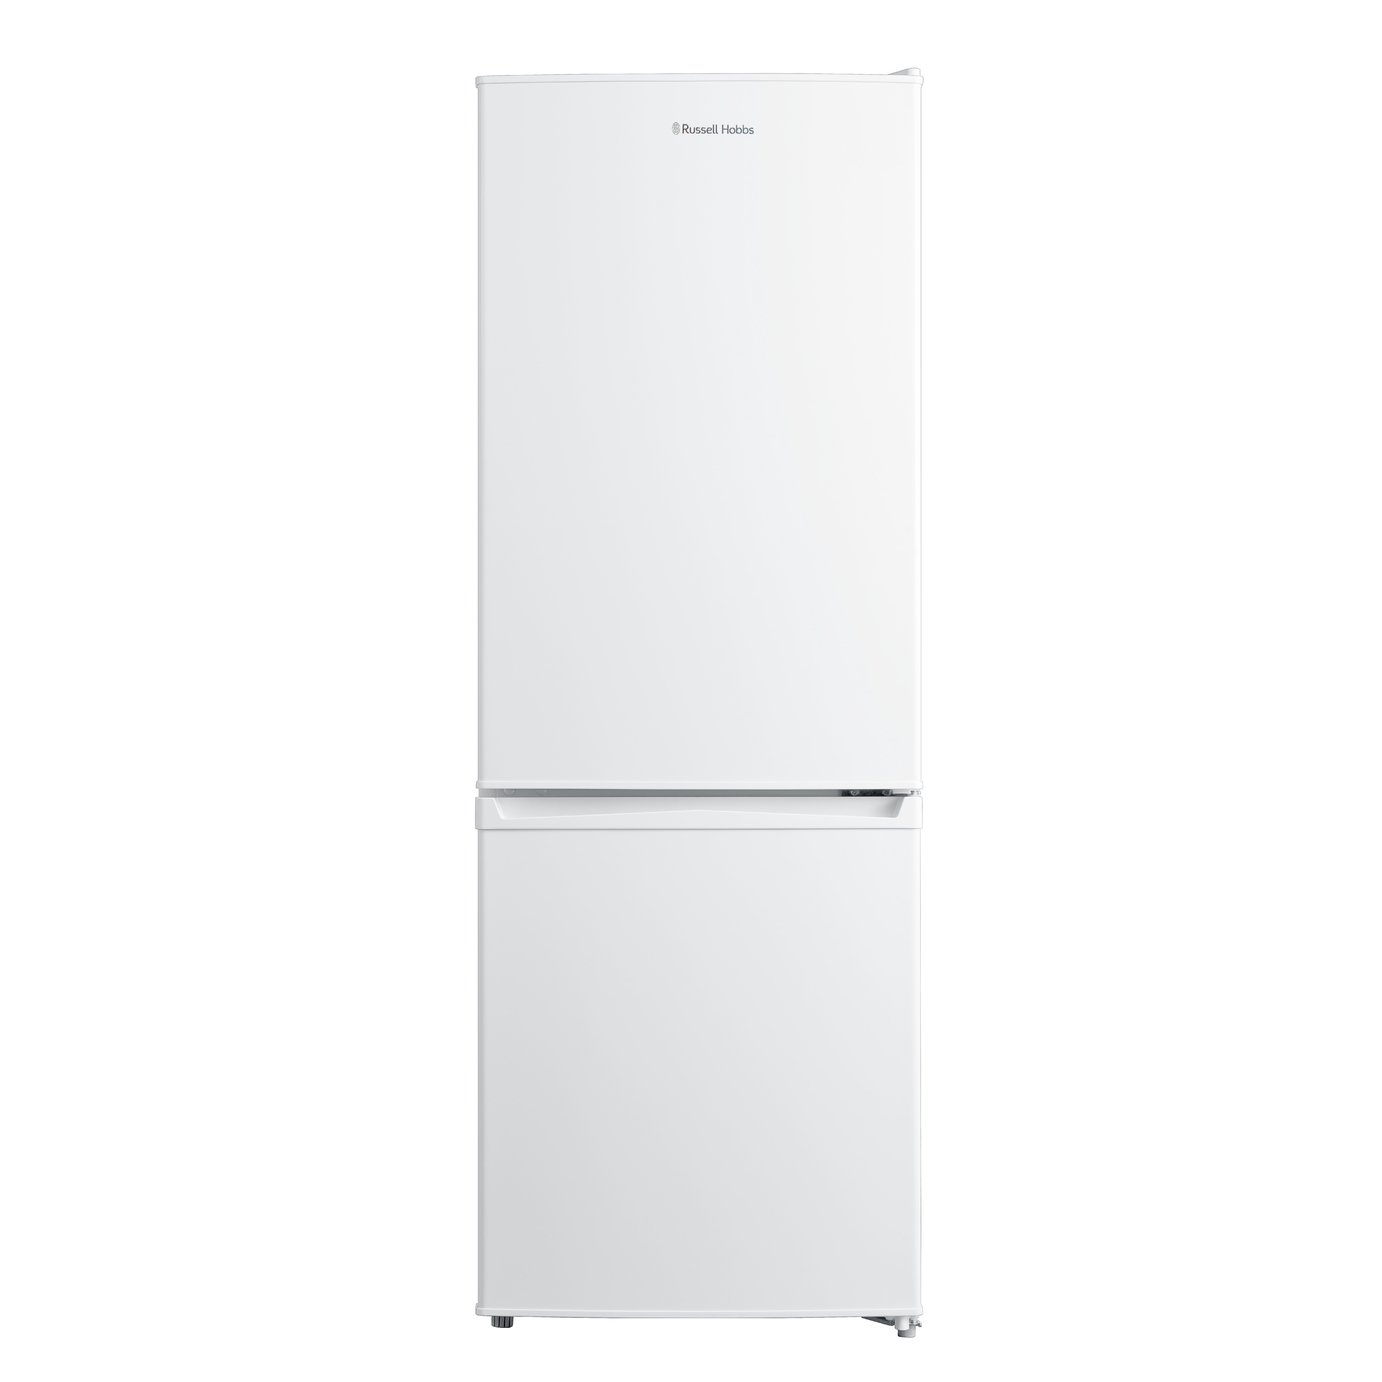 Russell Hobbs RH50FF144W Fridge Freezer - White Best Price, Cheapest Prices